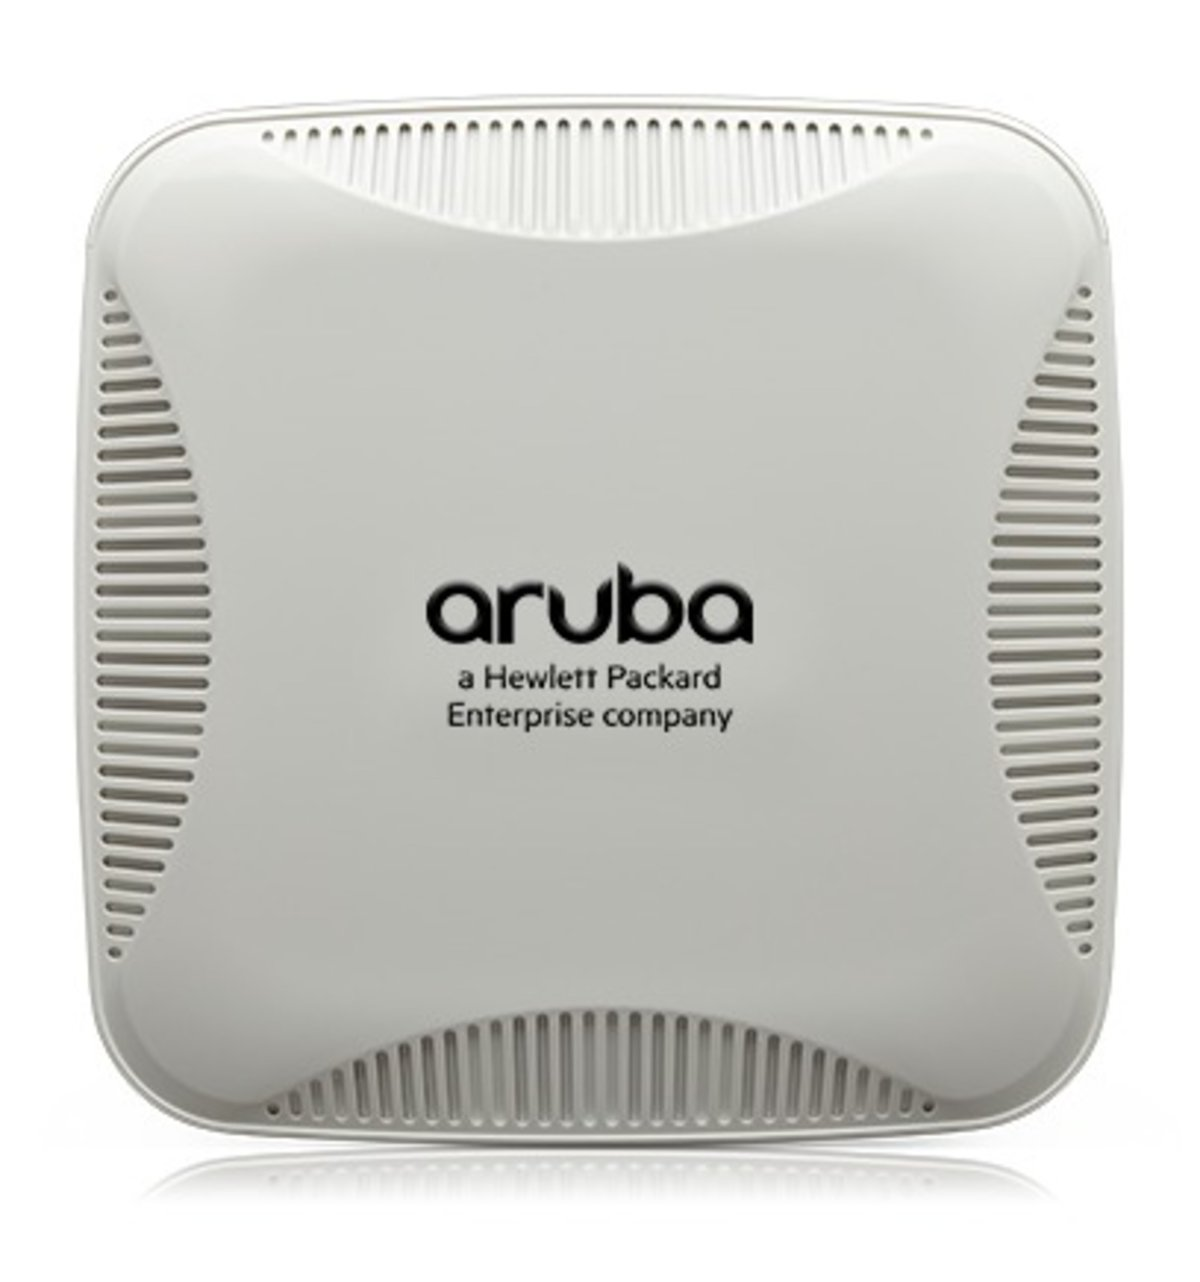 HPE Aruba 7005 (RW) Controller - network management device